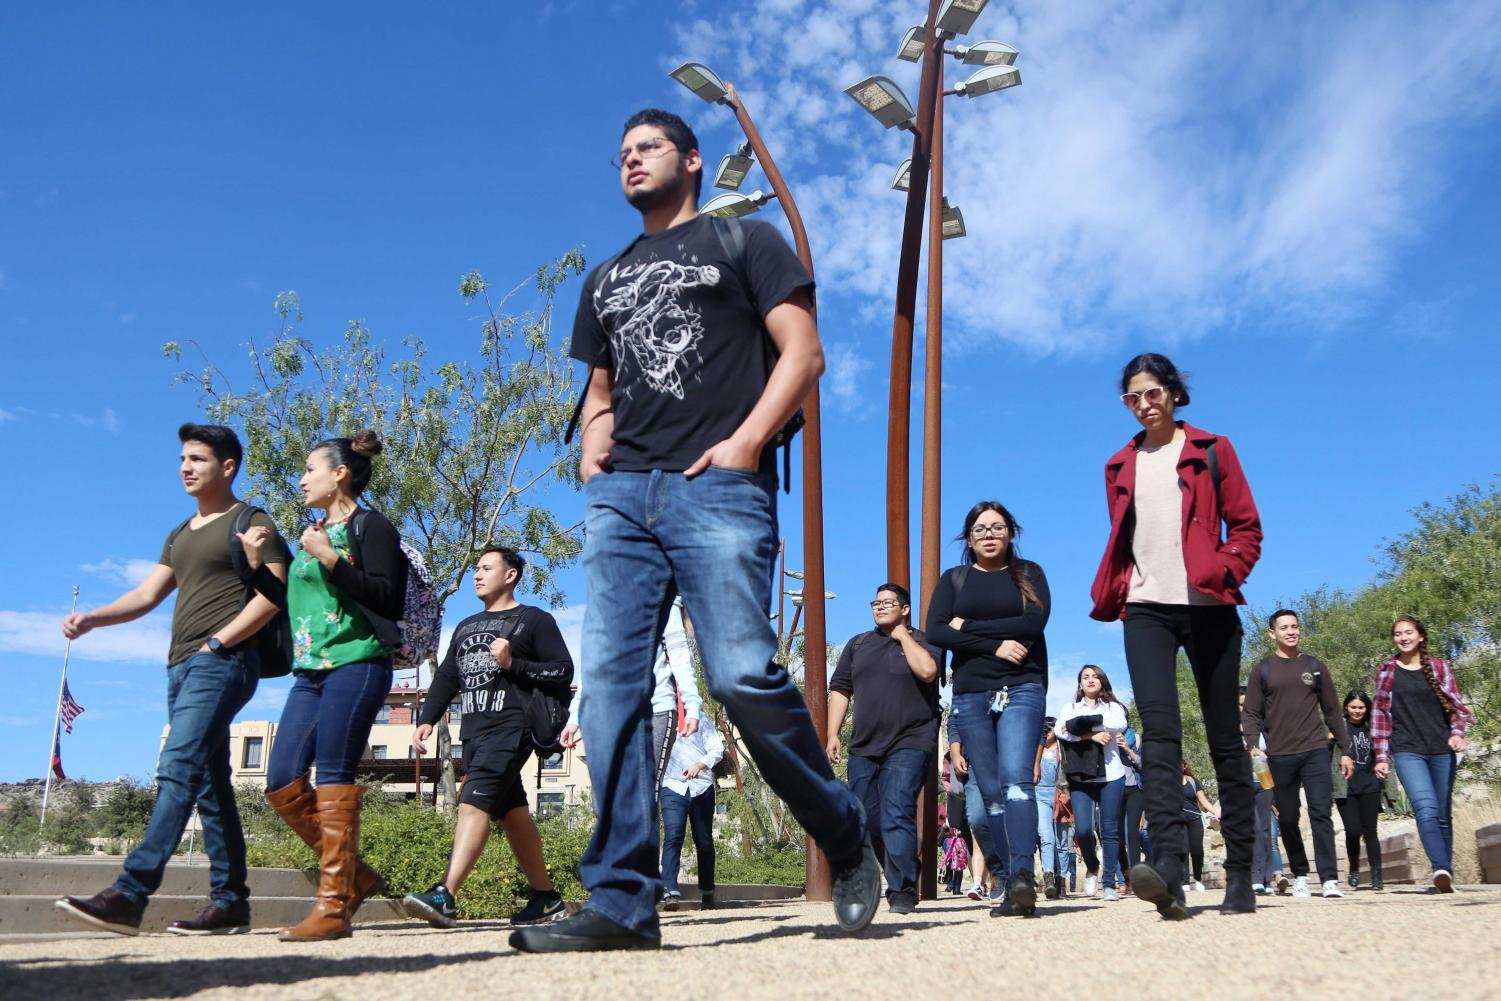 Students+walk+out+in+support+of+the+Dream+Act+and+DACA+recipients.+